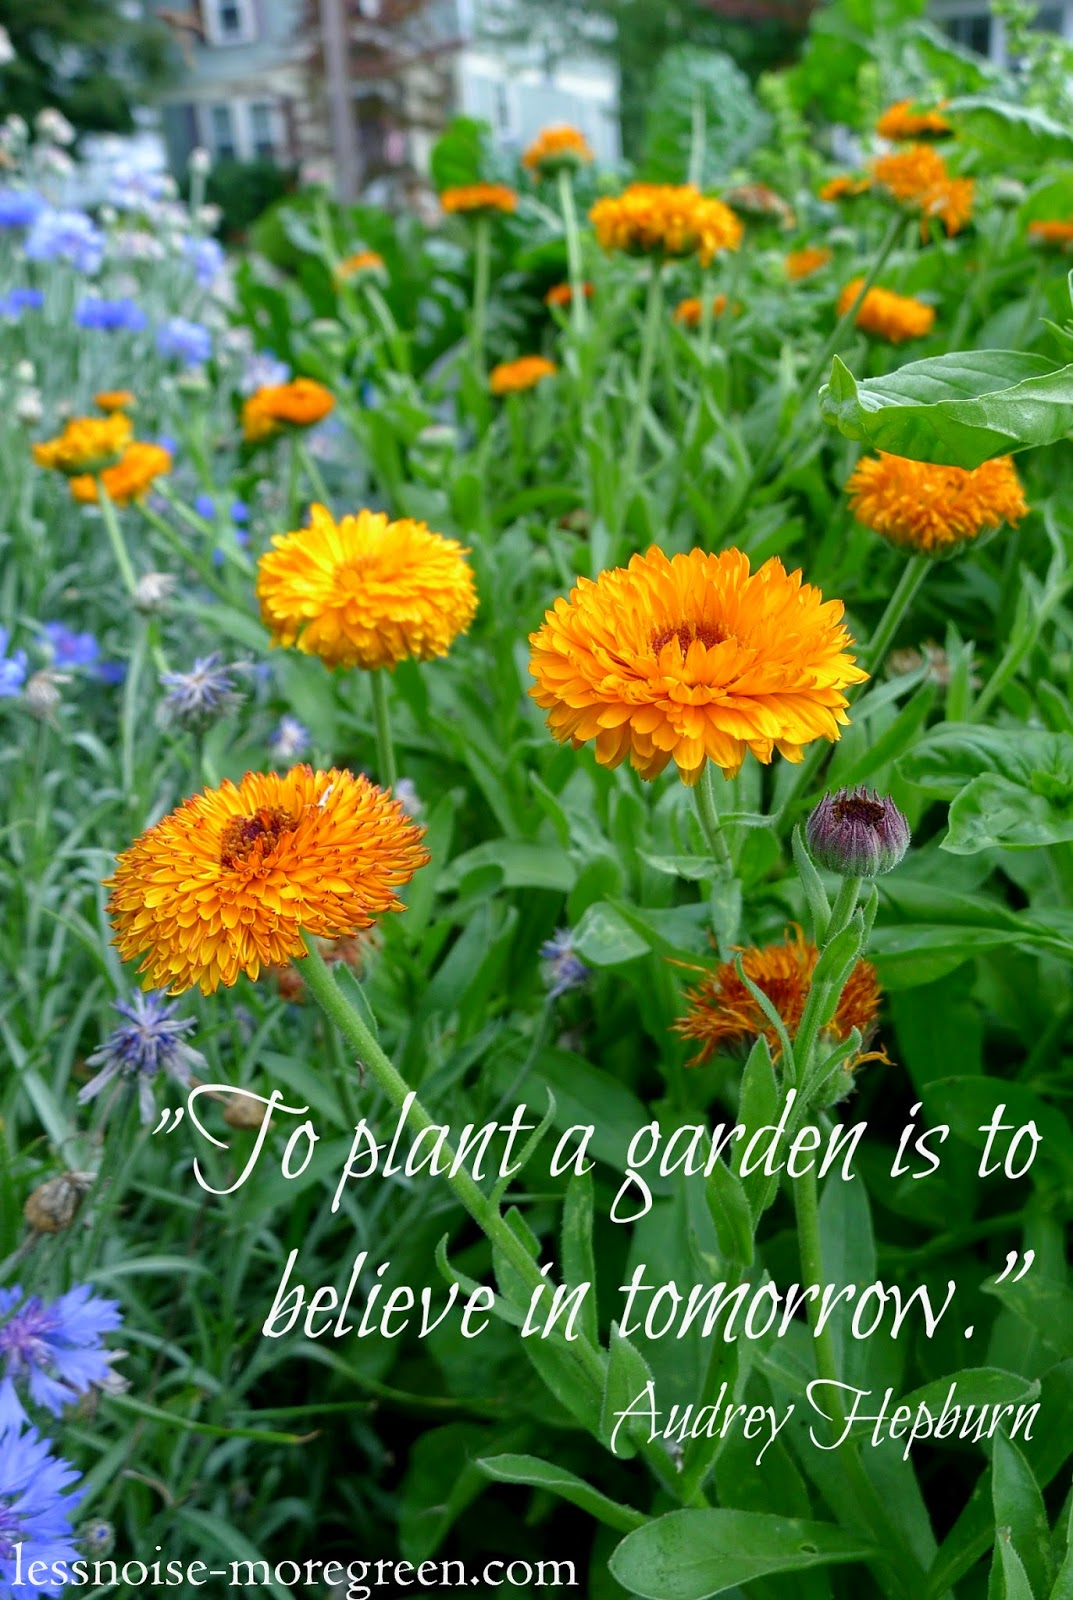 To plant a garden is to believe in tomorrow, Audrey Hepburn quote, gardening quote